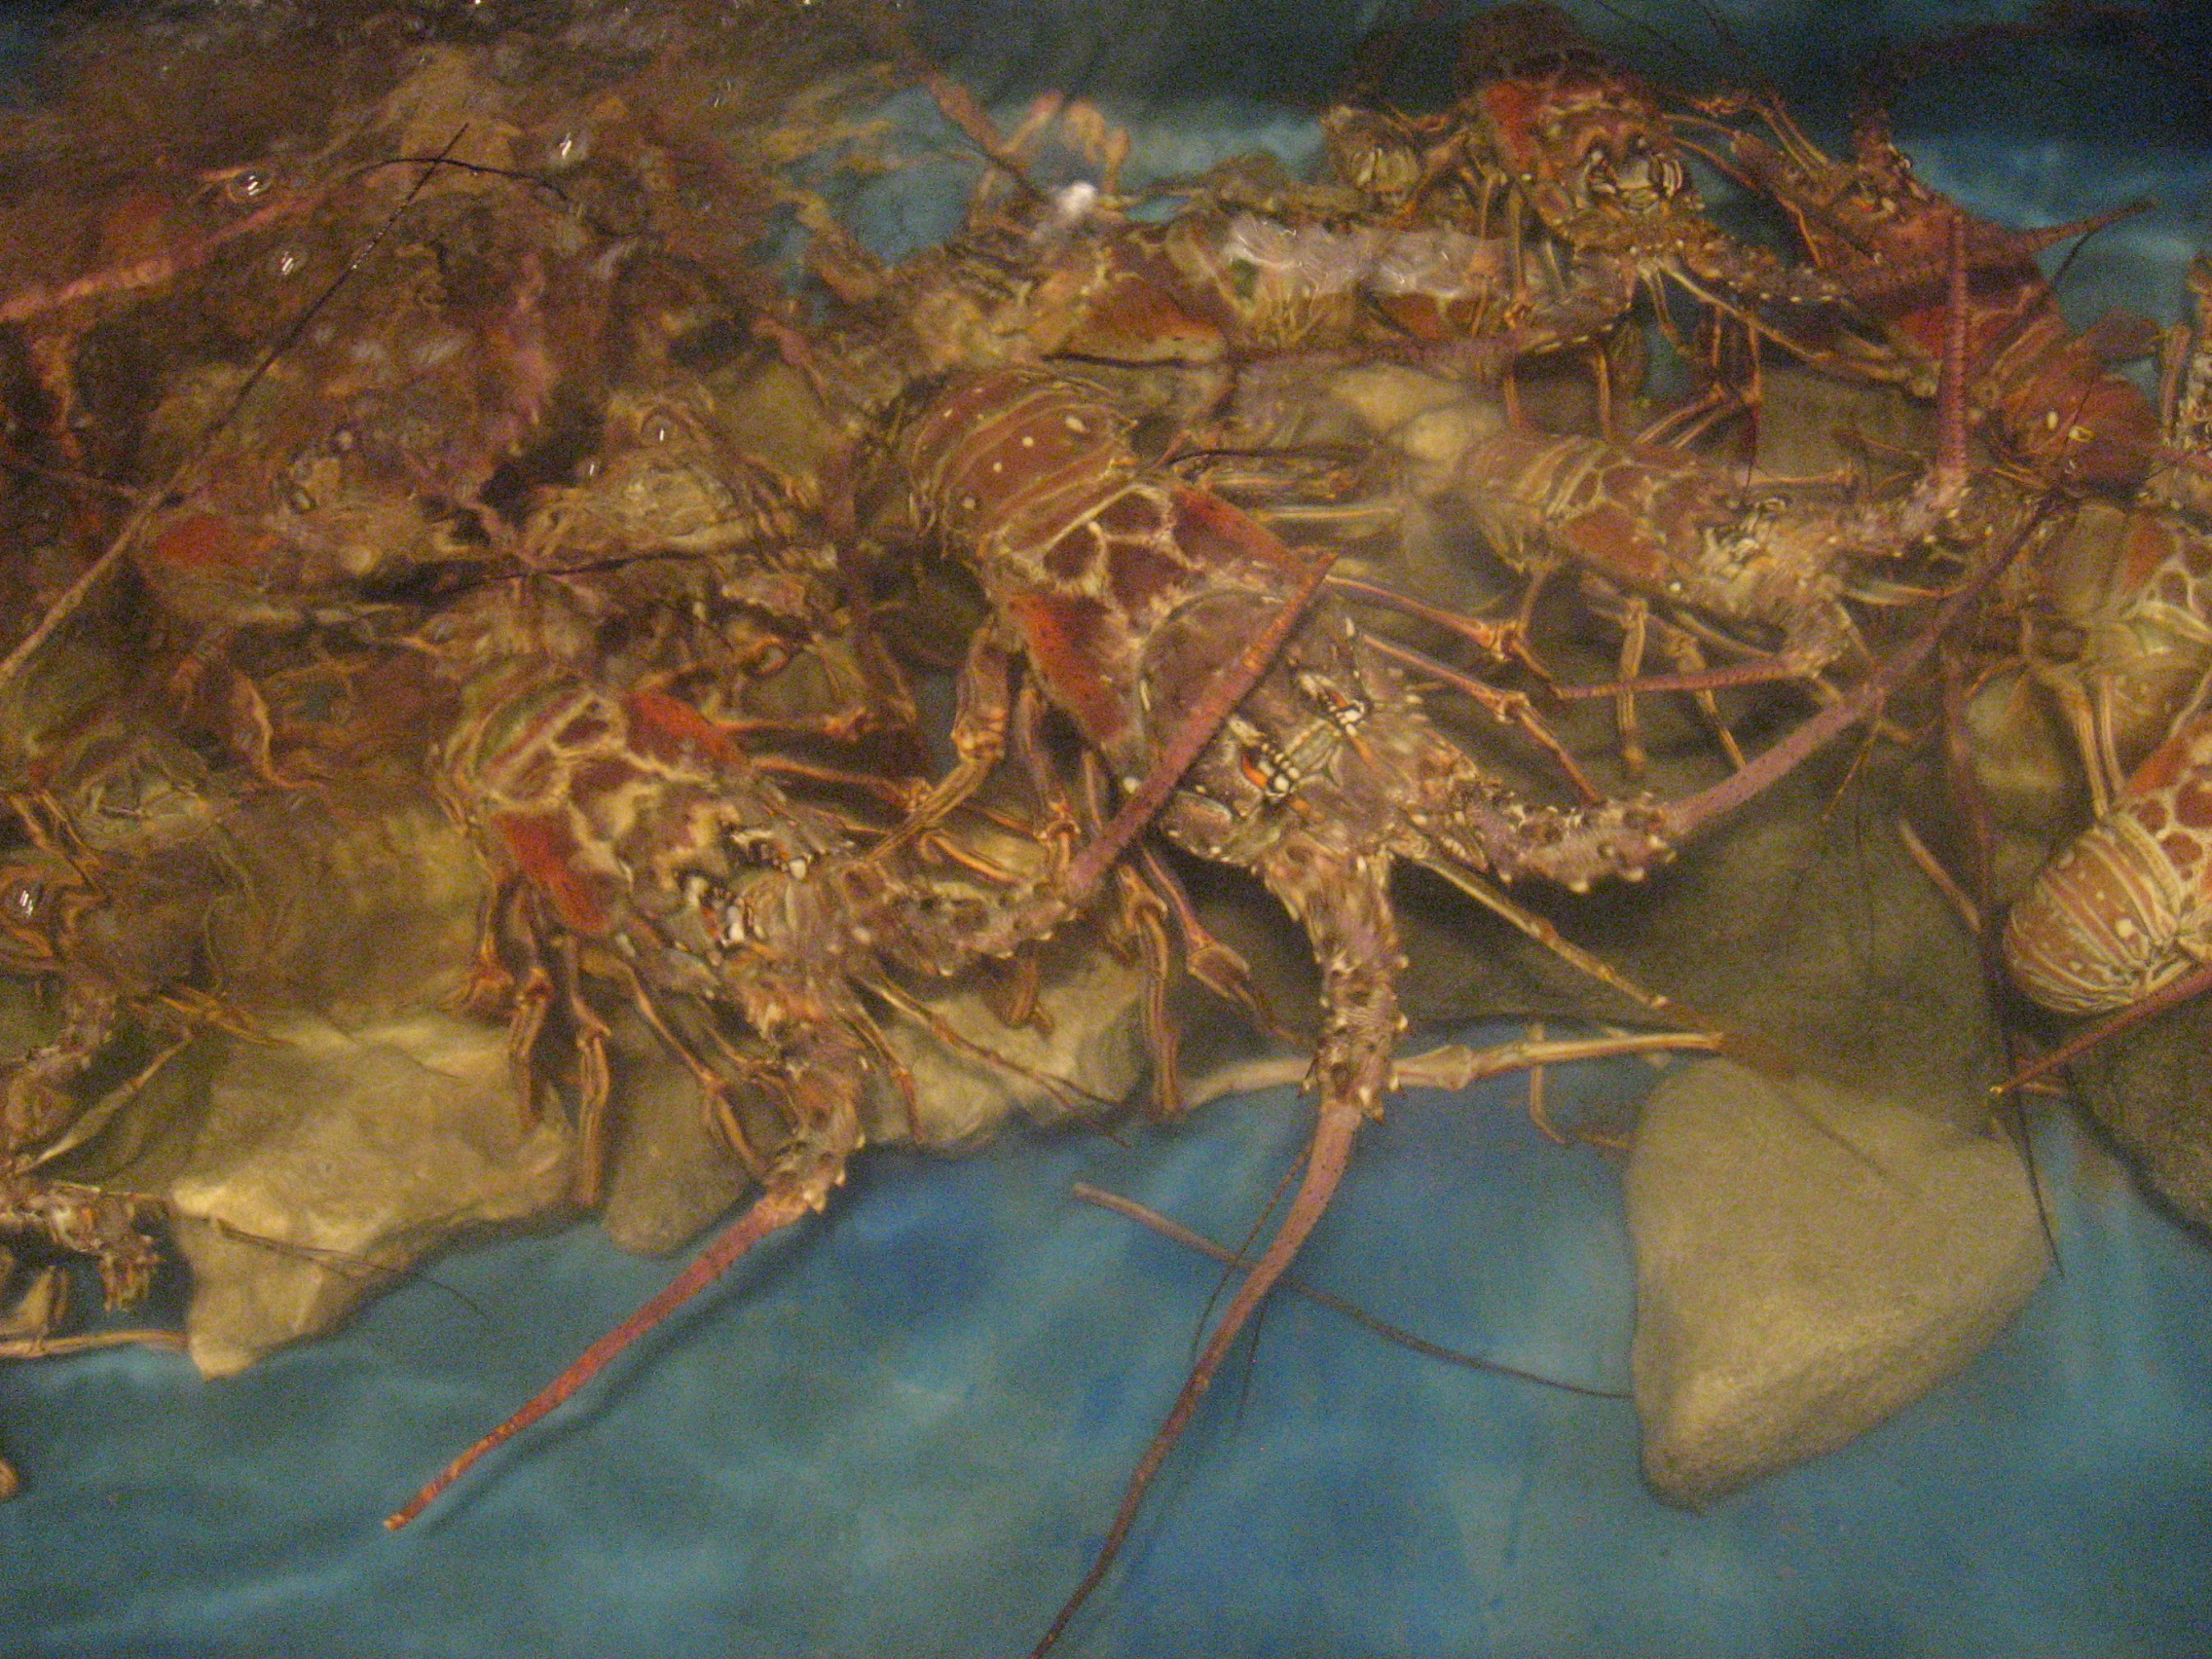 Tasmanian Government takes steps to ensure sustainable rock lobster fishery